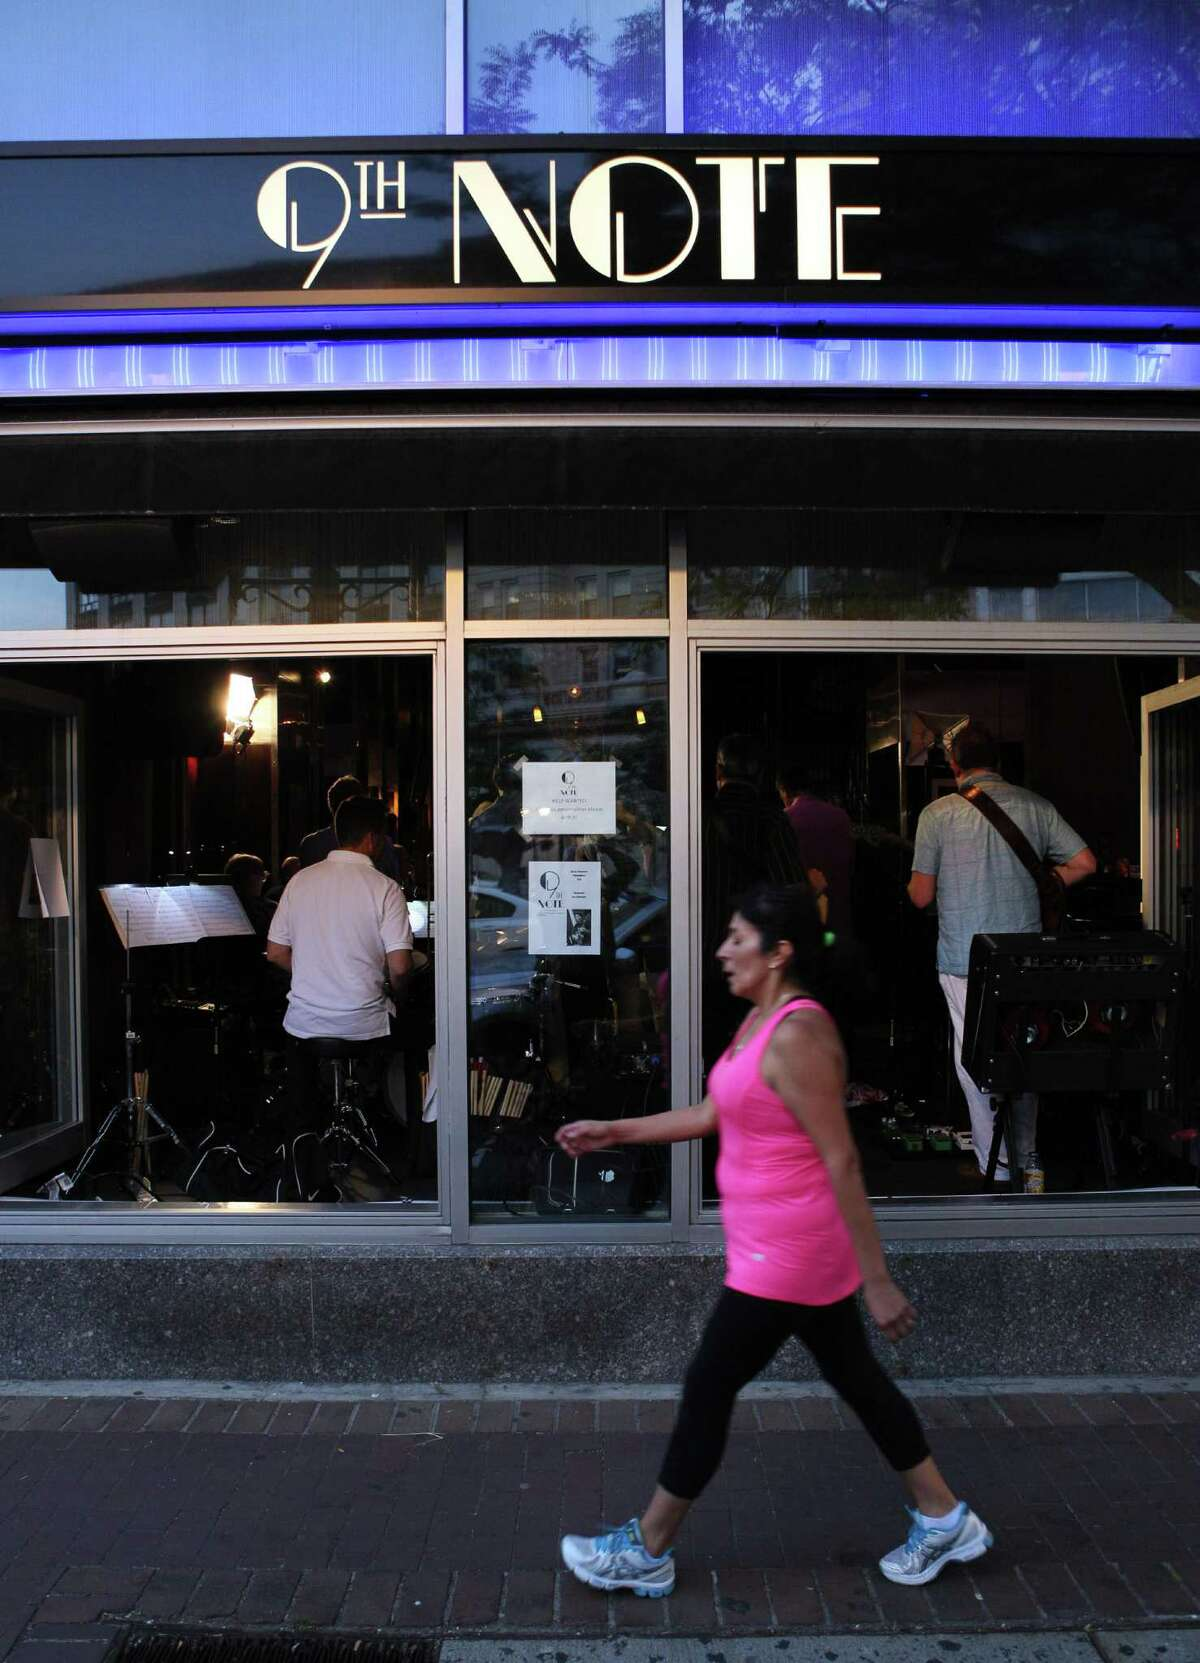 Stamford, Ct. 6.20.16 --- Ninth Note Jazz Supper Club --- Along Bank Street on monday evenings in downtown Stamford, the Big Band sound of the 9th Note Jazz orchestra can be heard through the front windows and down the block, as the 18 piece band plays its music.